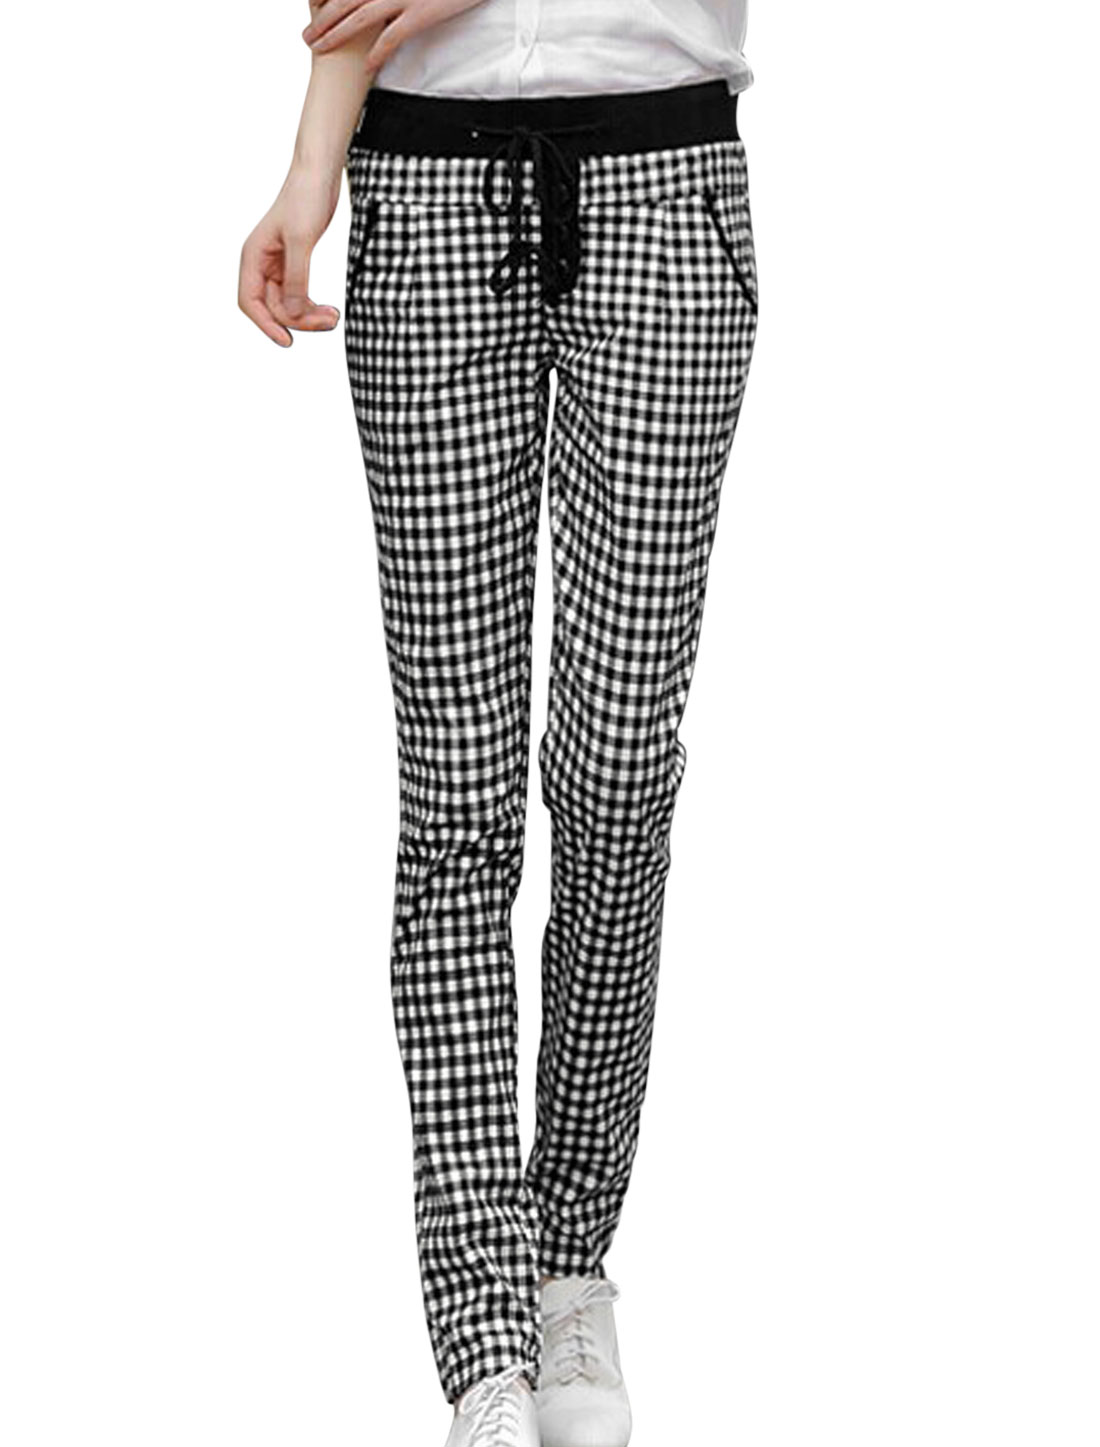 Lady Plaids Pattern Drawstring Waist Slant Pockets Casual Pants Black White S